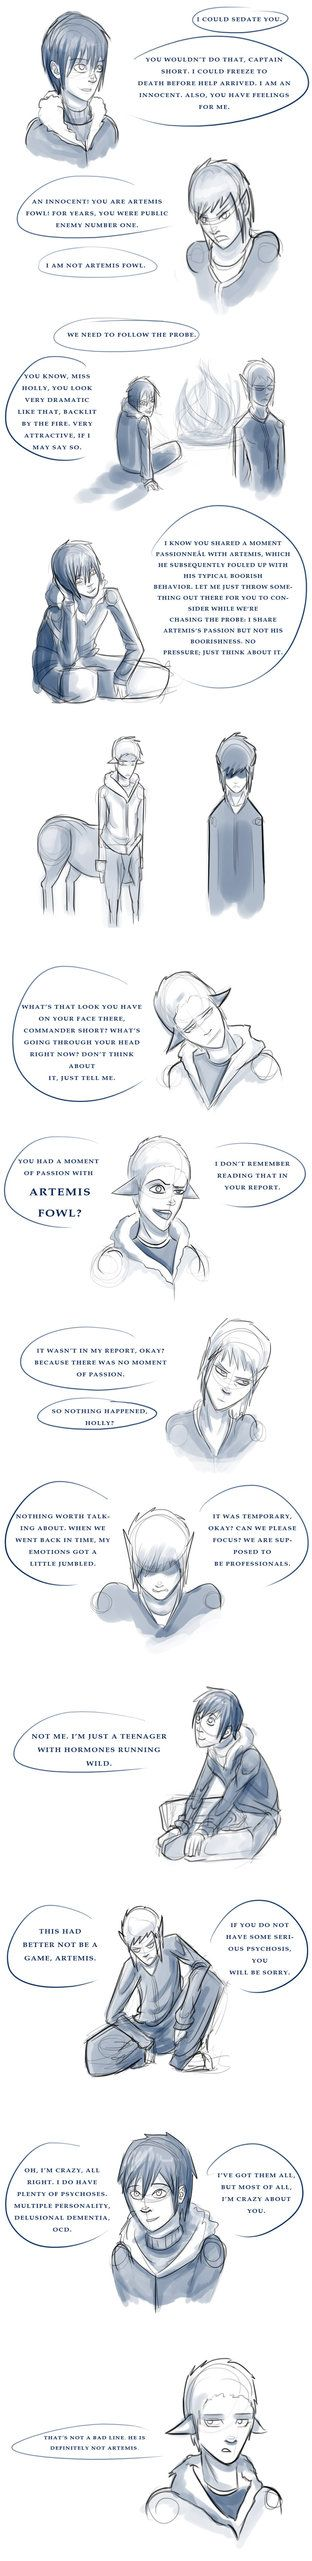 Artemis Fowl Ii By Eevauchiha7 Not Exactly A Sketchdump, But Hey  Obnoxious Teenager Artemis Is Amazing This All